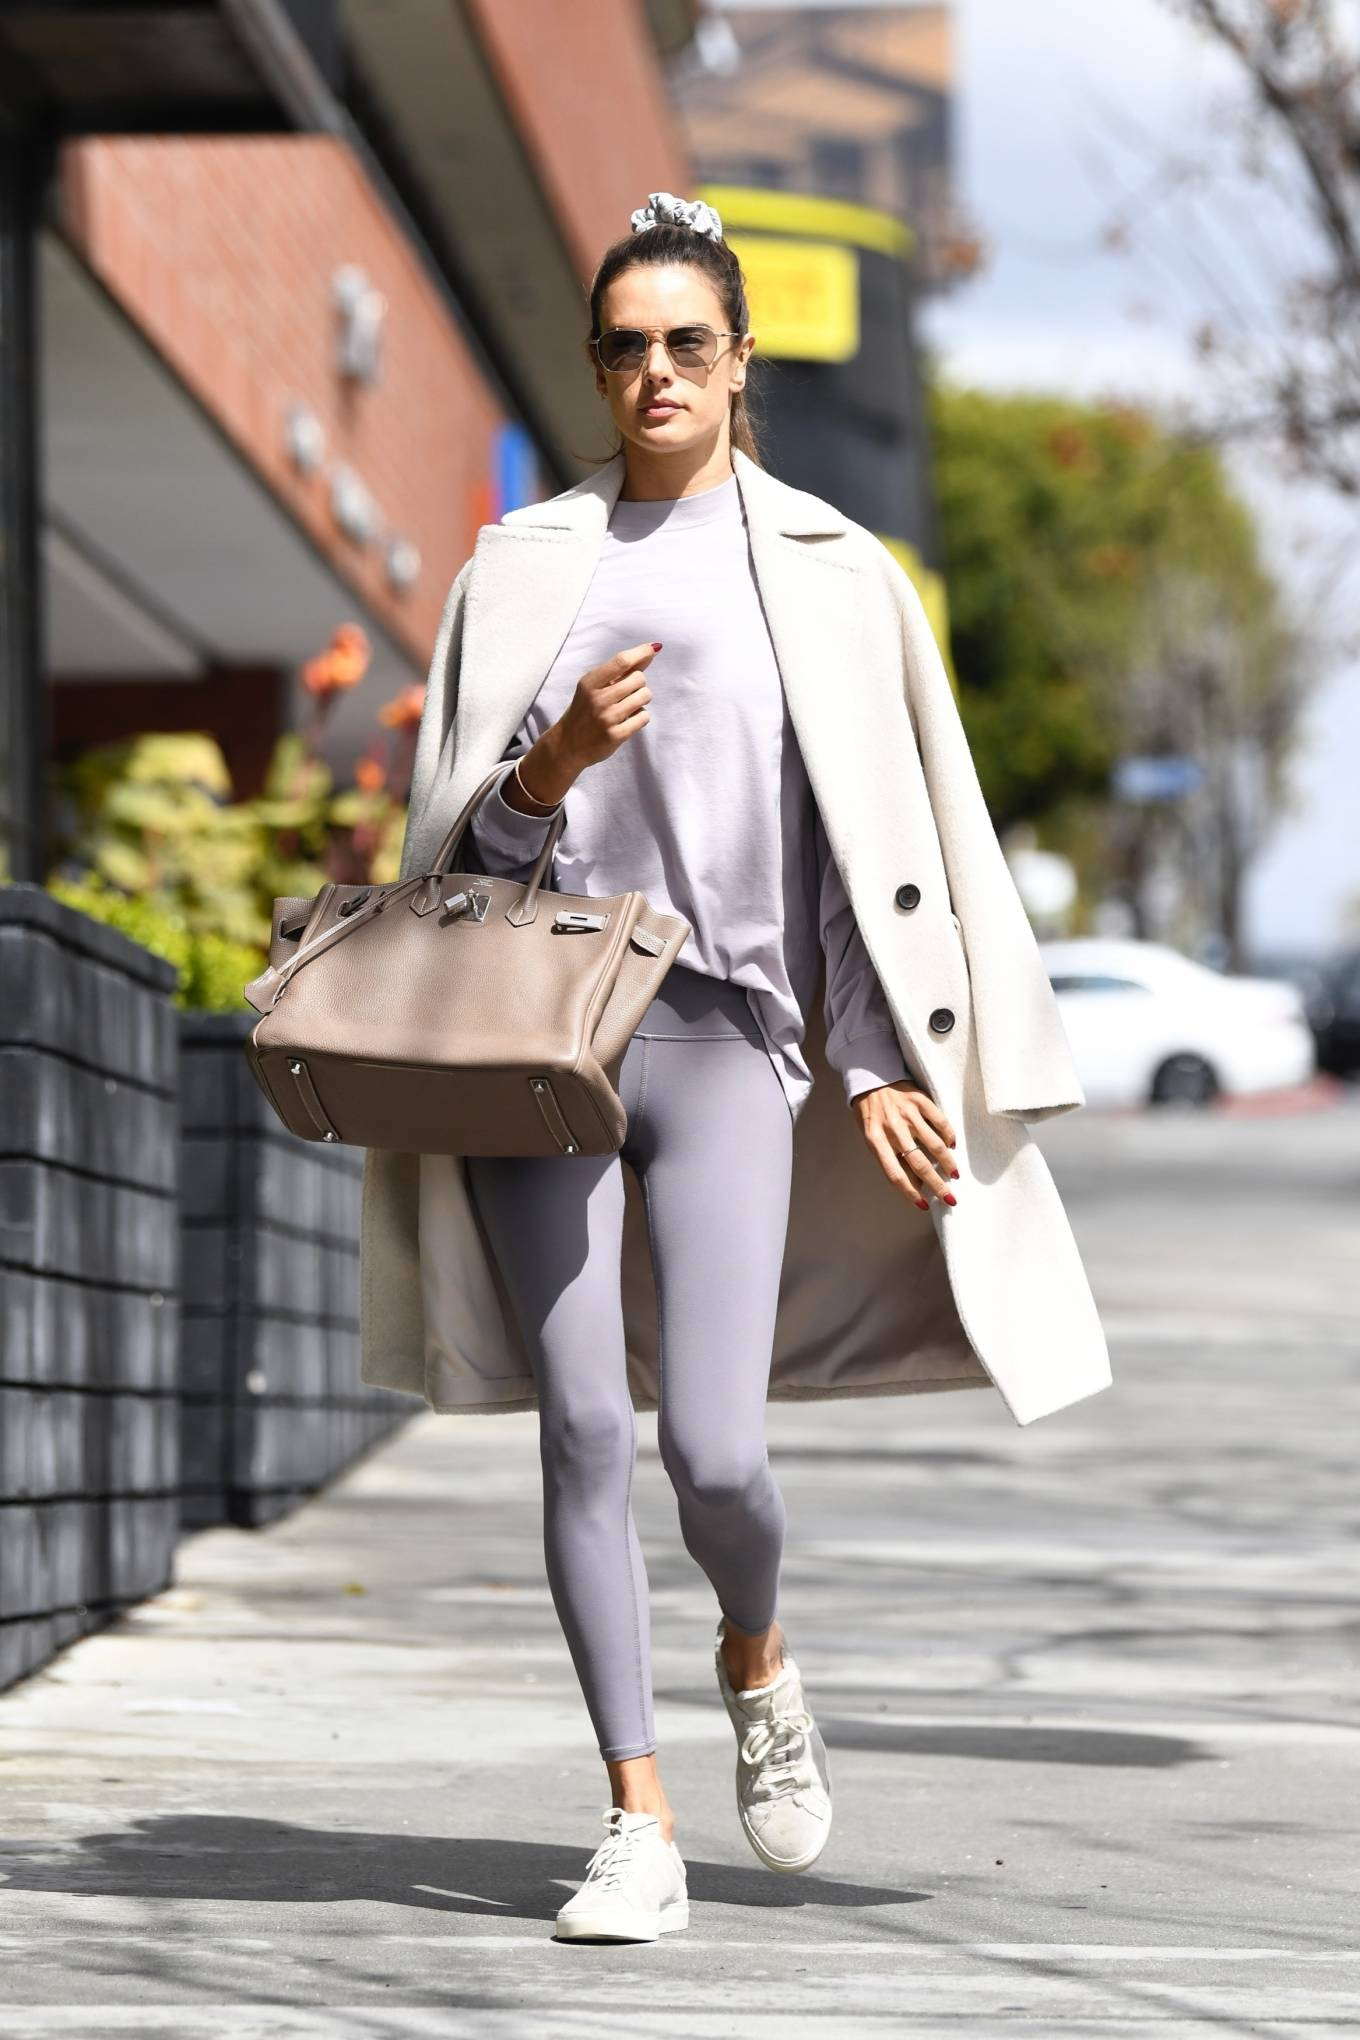 Alessandra Ambrosio rocking round white suede lace-up sneakers by Common Projects with flat heel